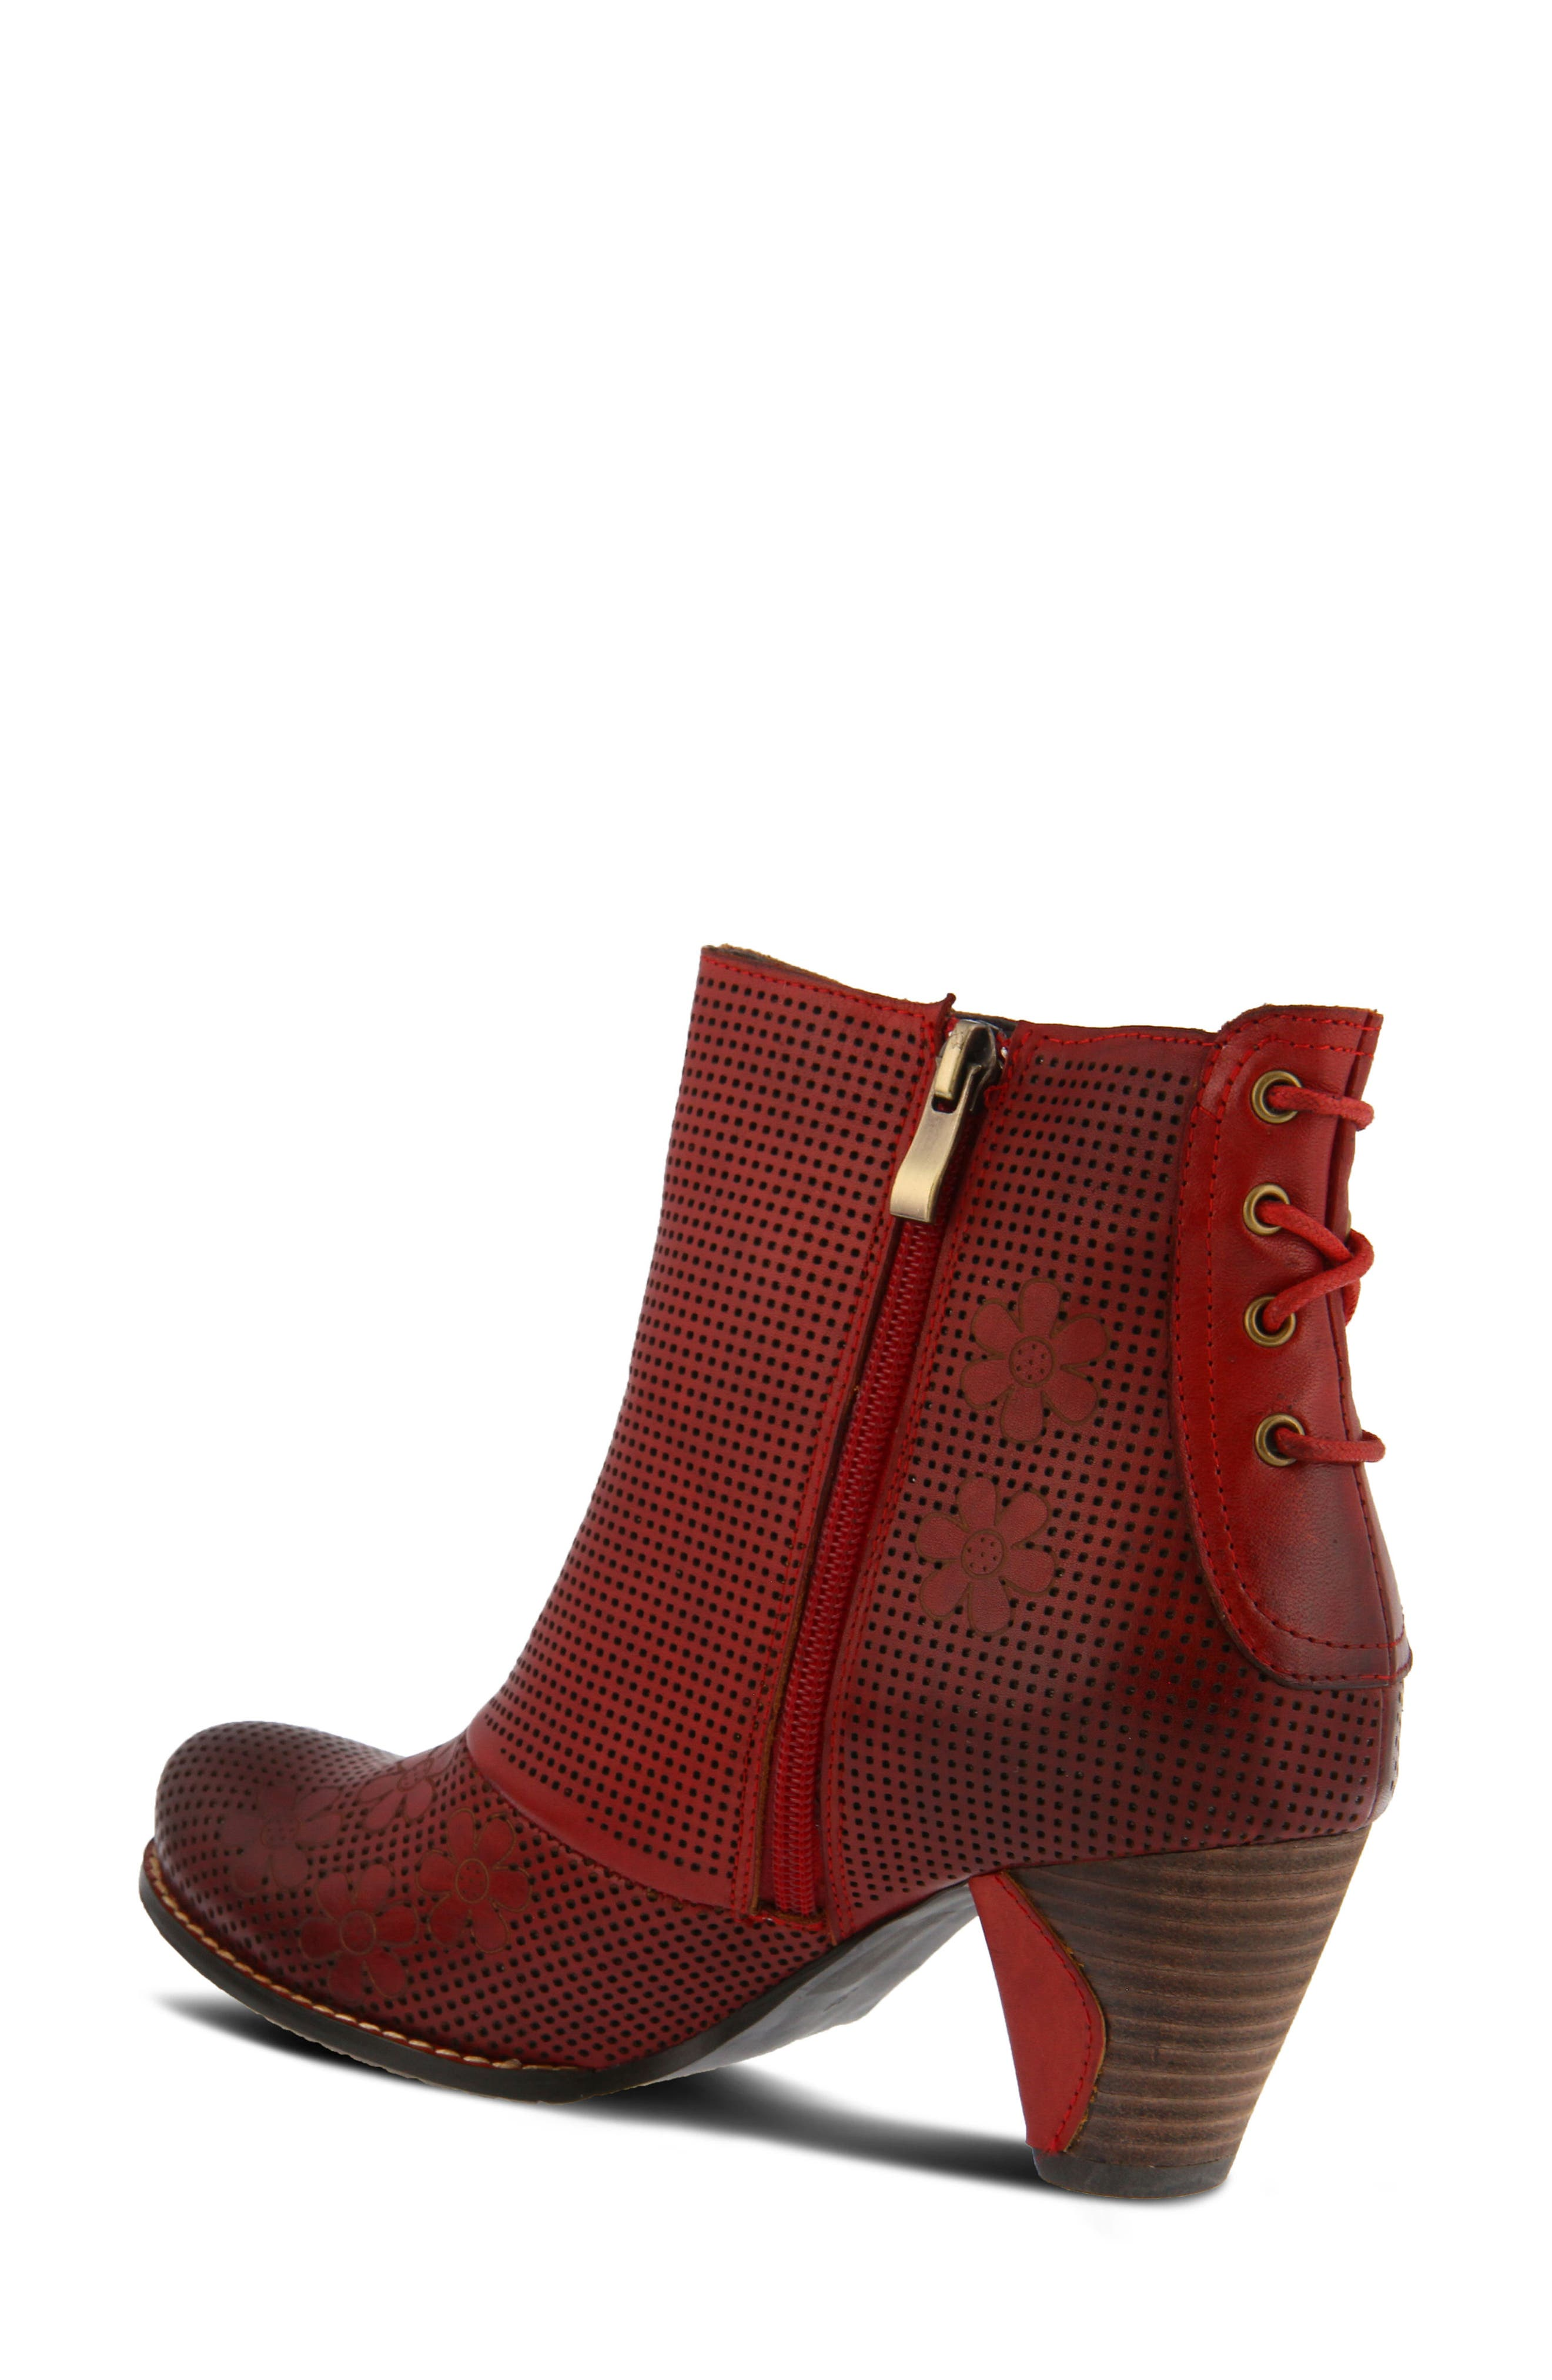 L'Artiste Teca Bootie,                             Alternate thumbnail 2, color,                             Red Leather